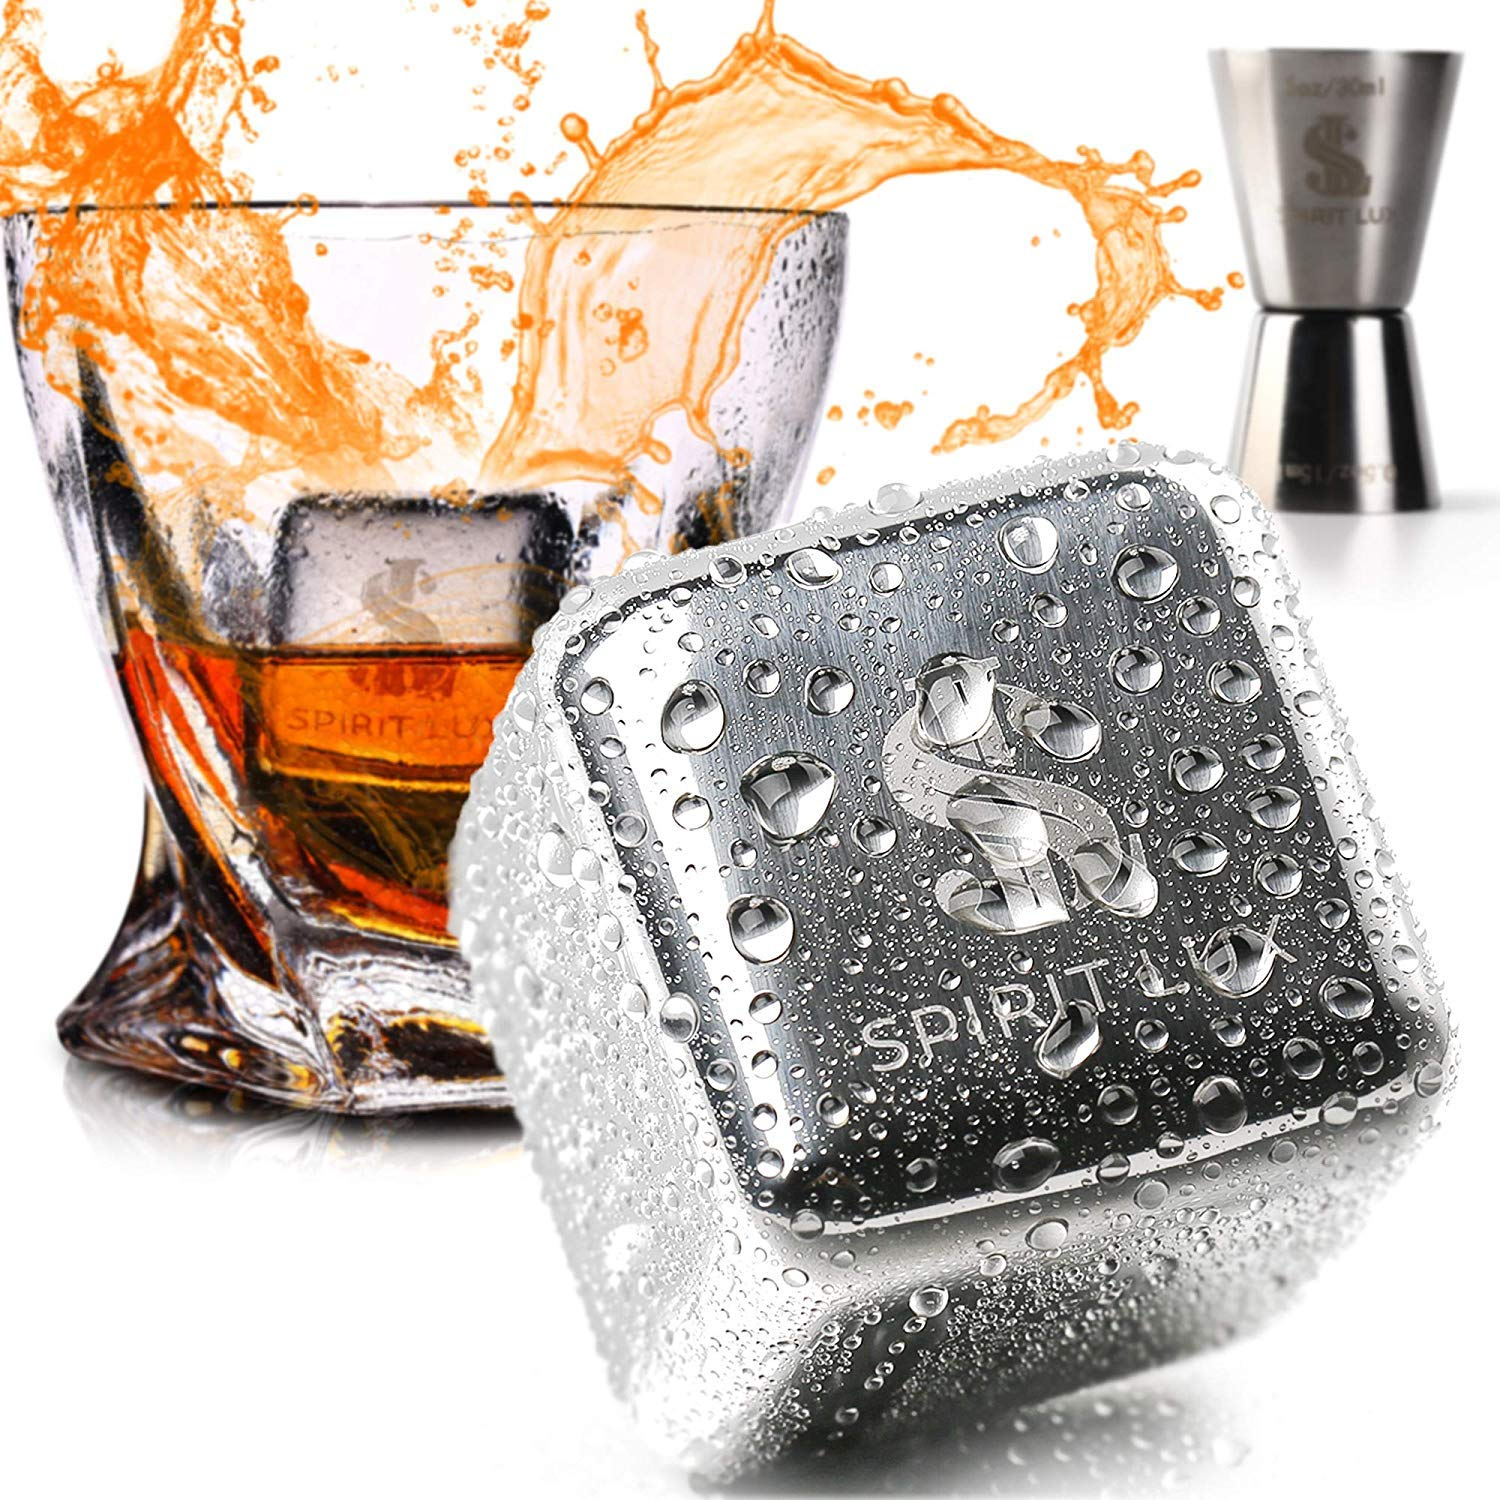 "King-Sized Stainless Steel Ice Cubes Whiskey Stones Gift Set of 2, Reusable Metal Ice Cubes for Whiskey, Bourbon,Scotch, Whiskey Rocks Chilling Stones 1.5""+ Cork Coasters absorbent by Spirit Lux"